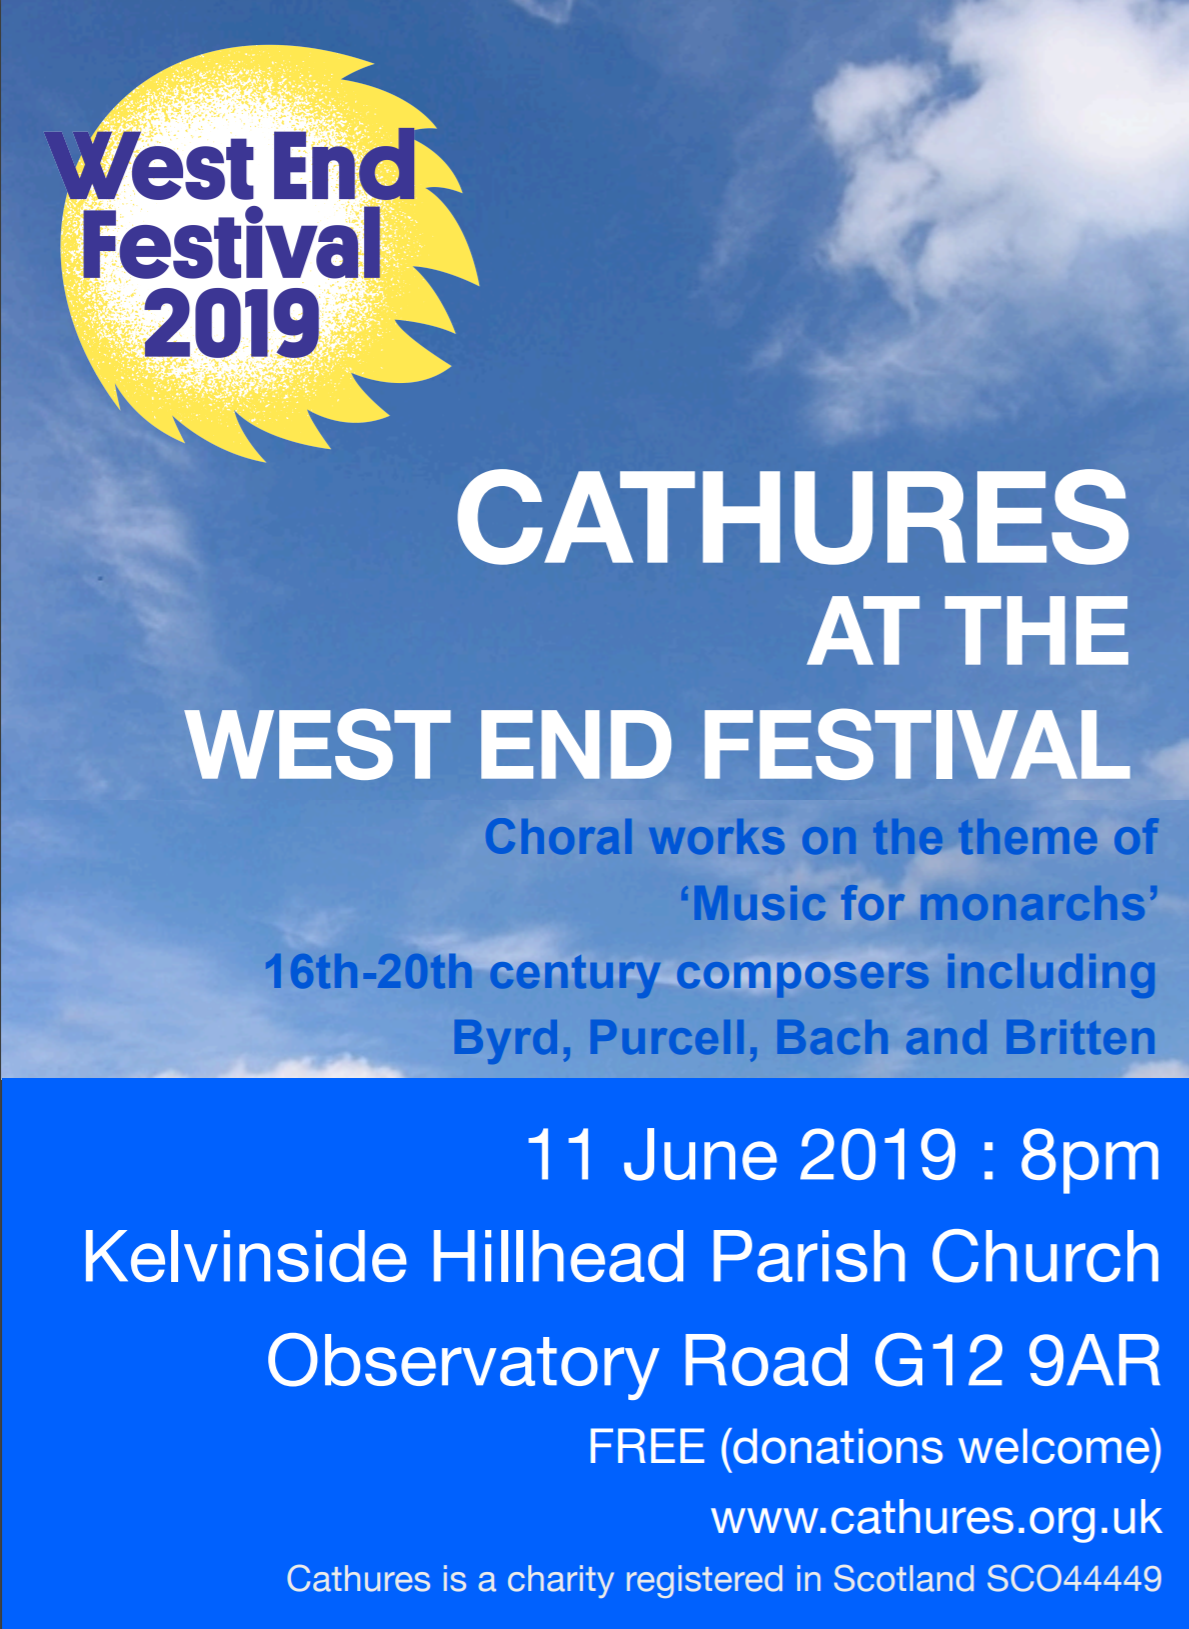 Cathures in concert Kelvinside Hillhead Parish Church, Tuesday 11th June 8pm